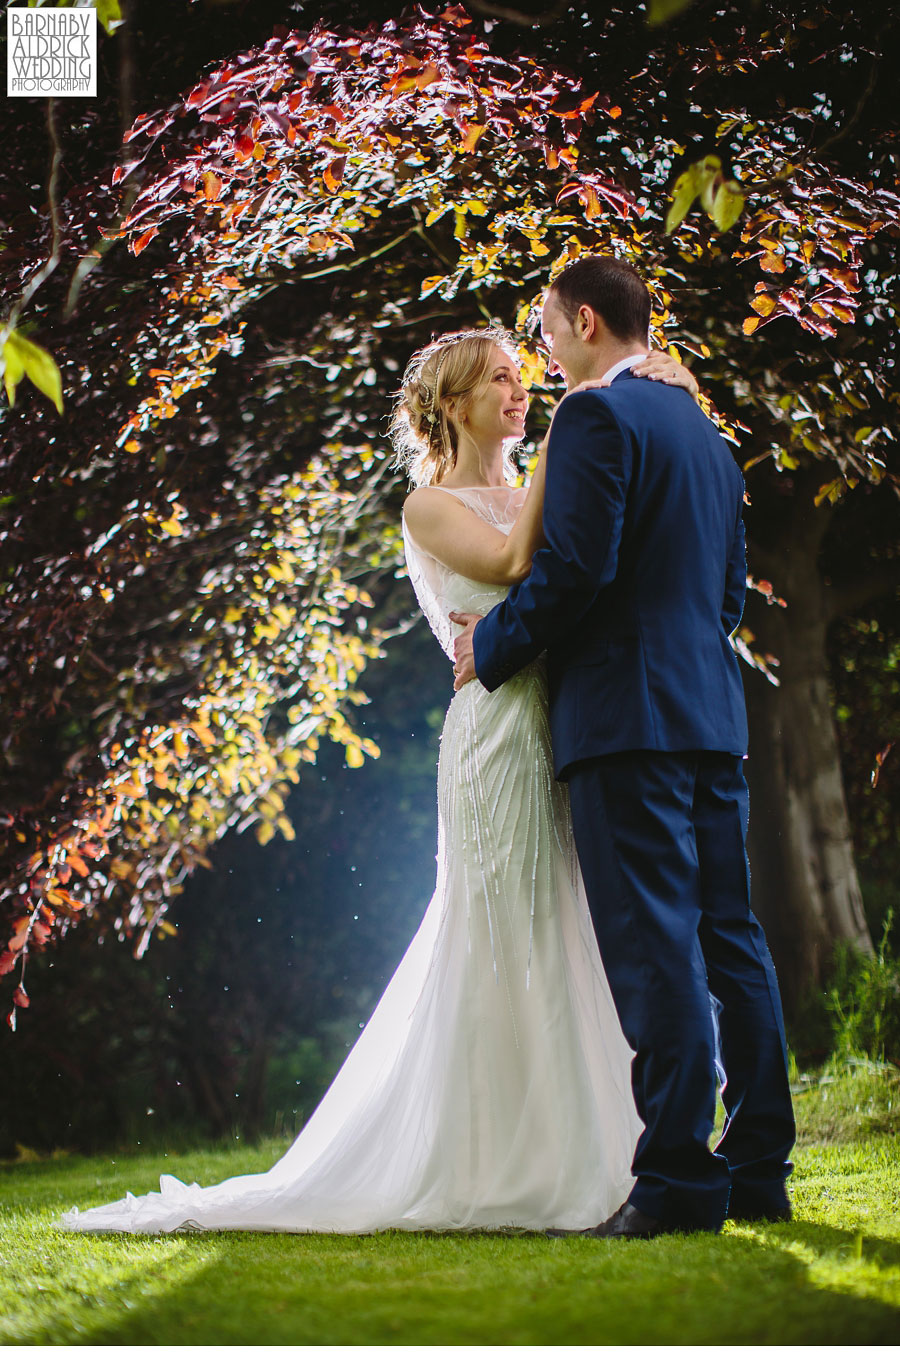 Taitlands Wedding Photography near Settle in The Yorkshire Dales 061